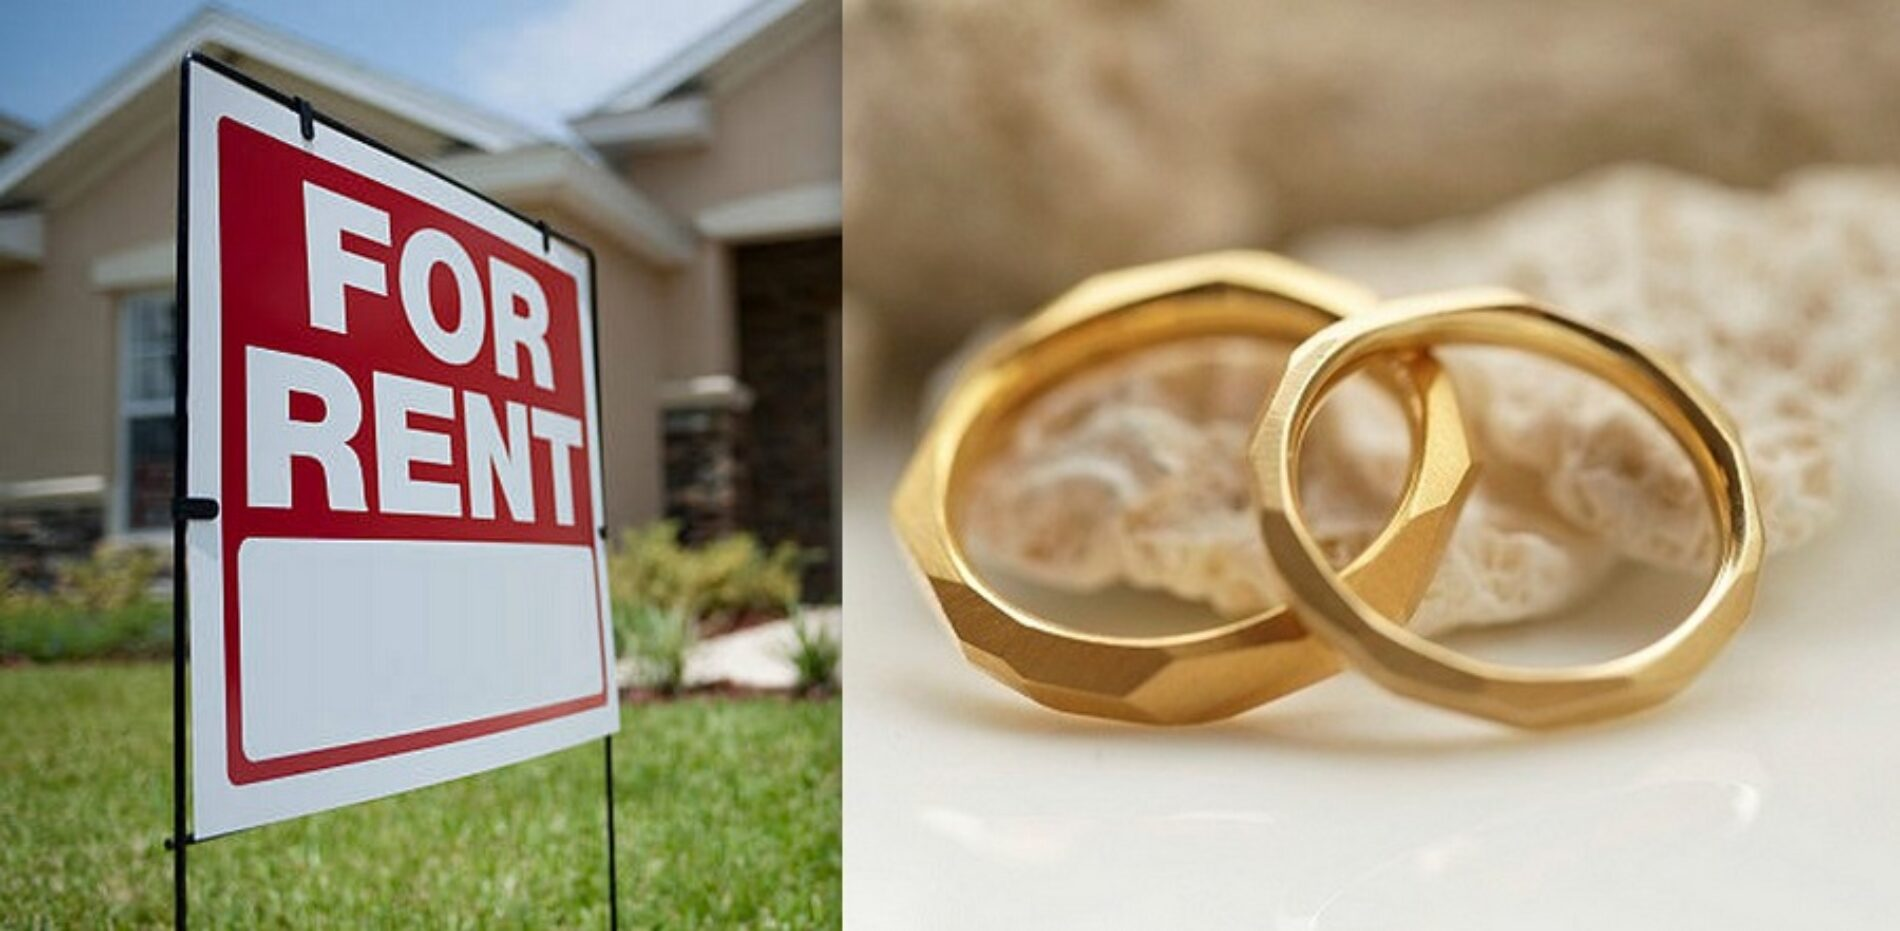 Two Queer Lagosians: One Needs A Marital Contract and The Other A Flatmate